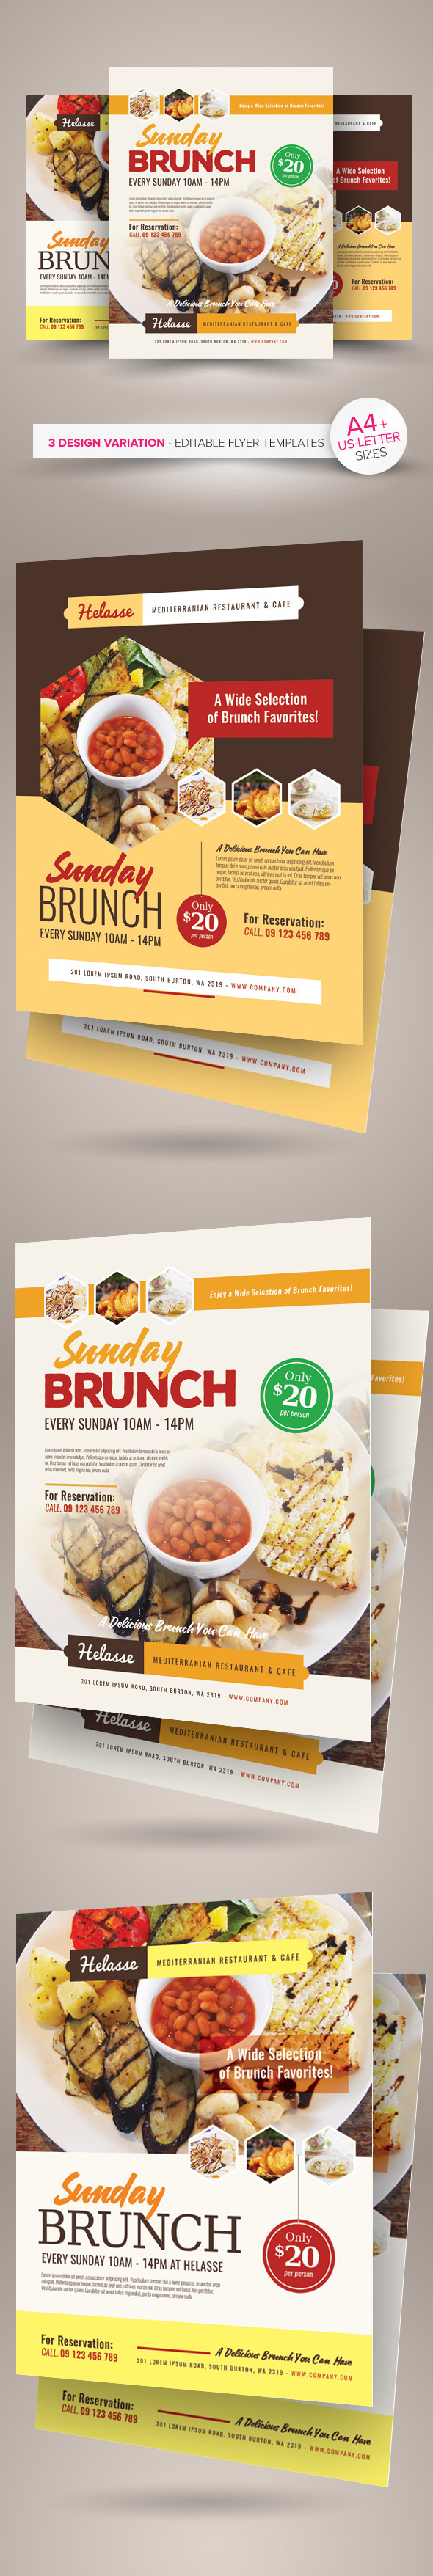 sunday brunch flyer templates on behance sunday brunch flyer templates are fully editable design templates created for on graphic river more info of the templates and how to get the